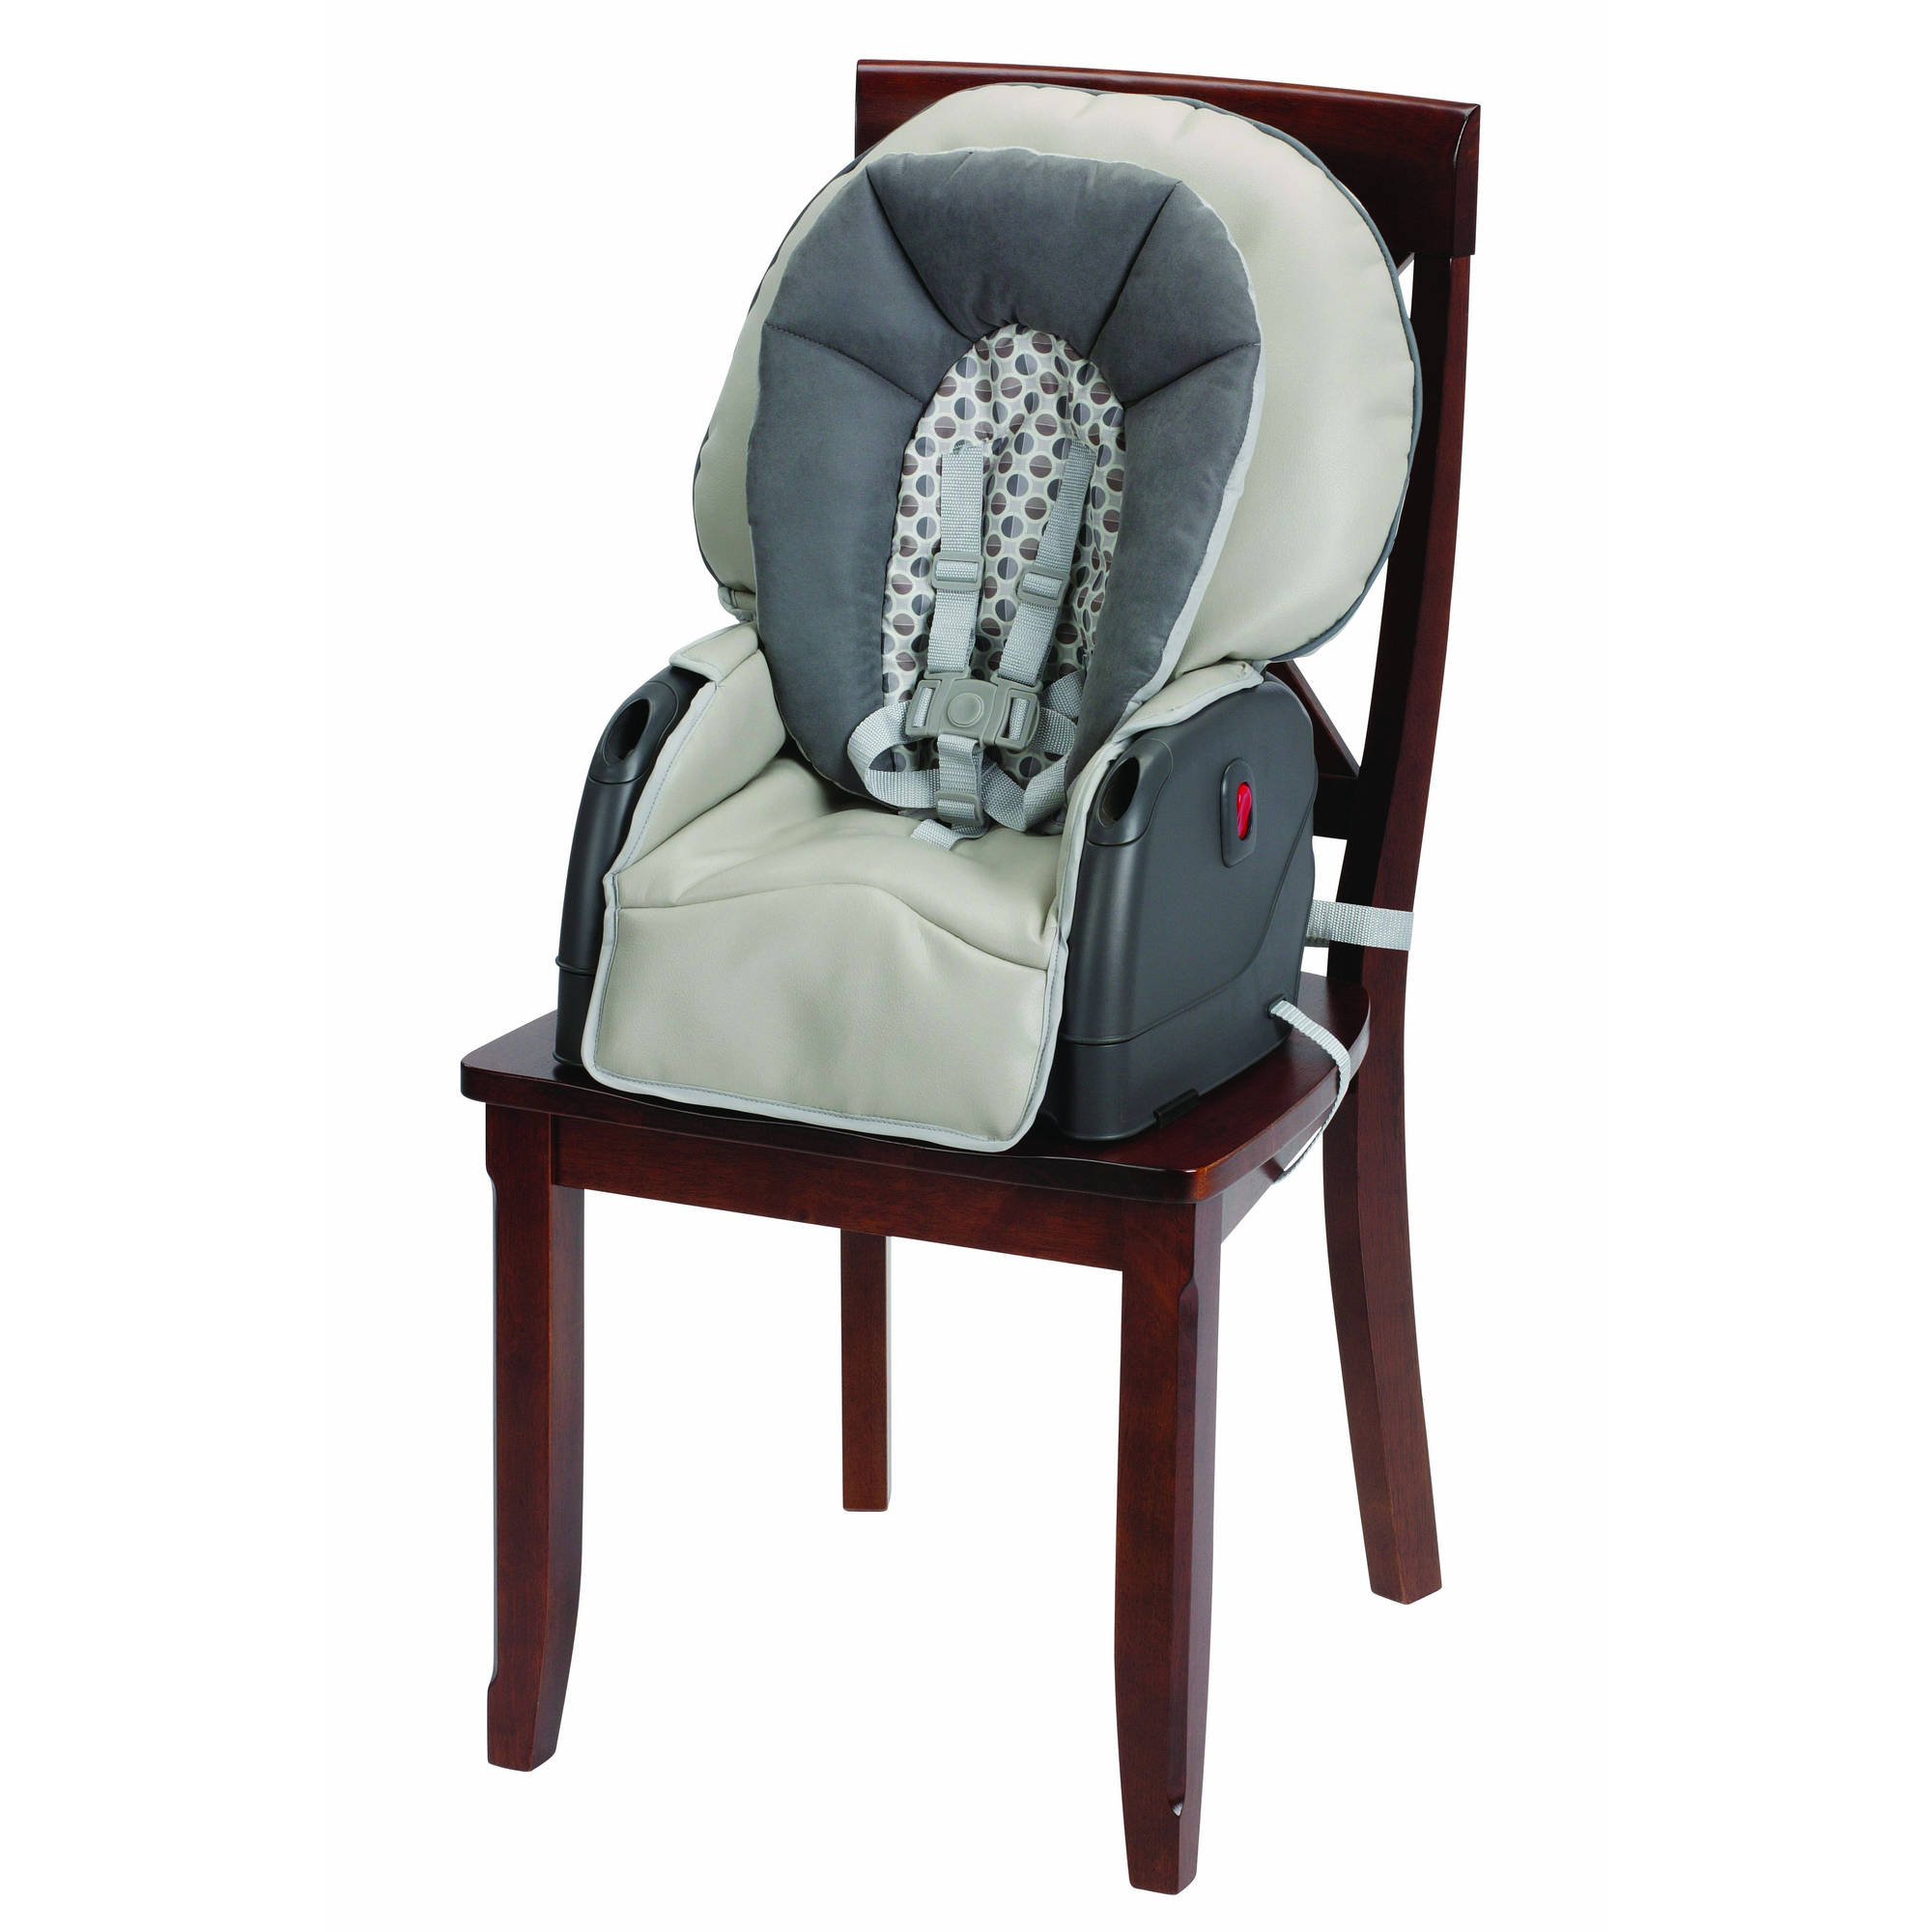 Graco Blossom 4 In 1 High Chair